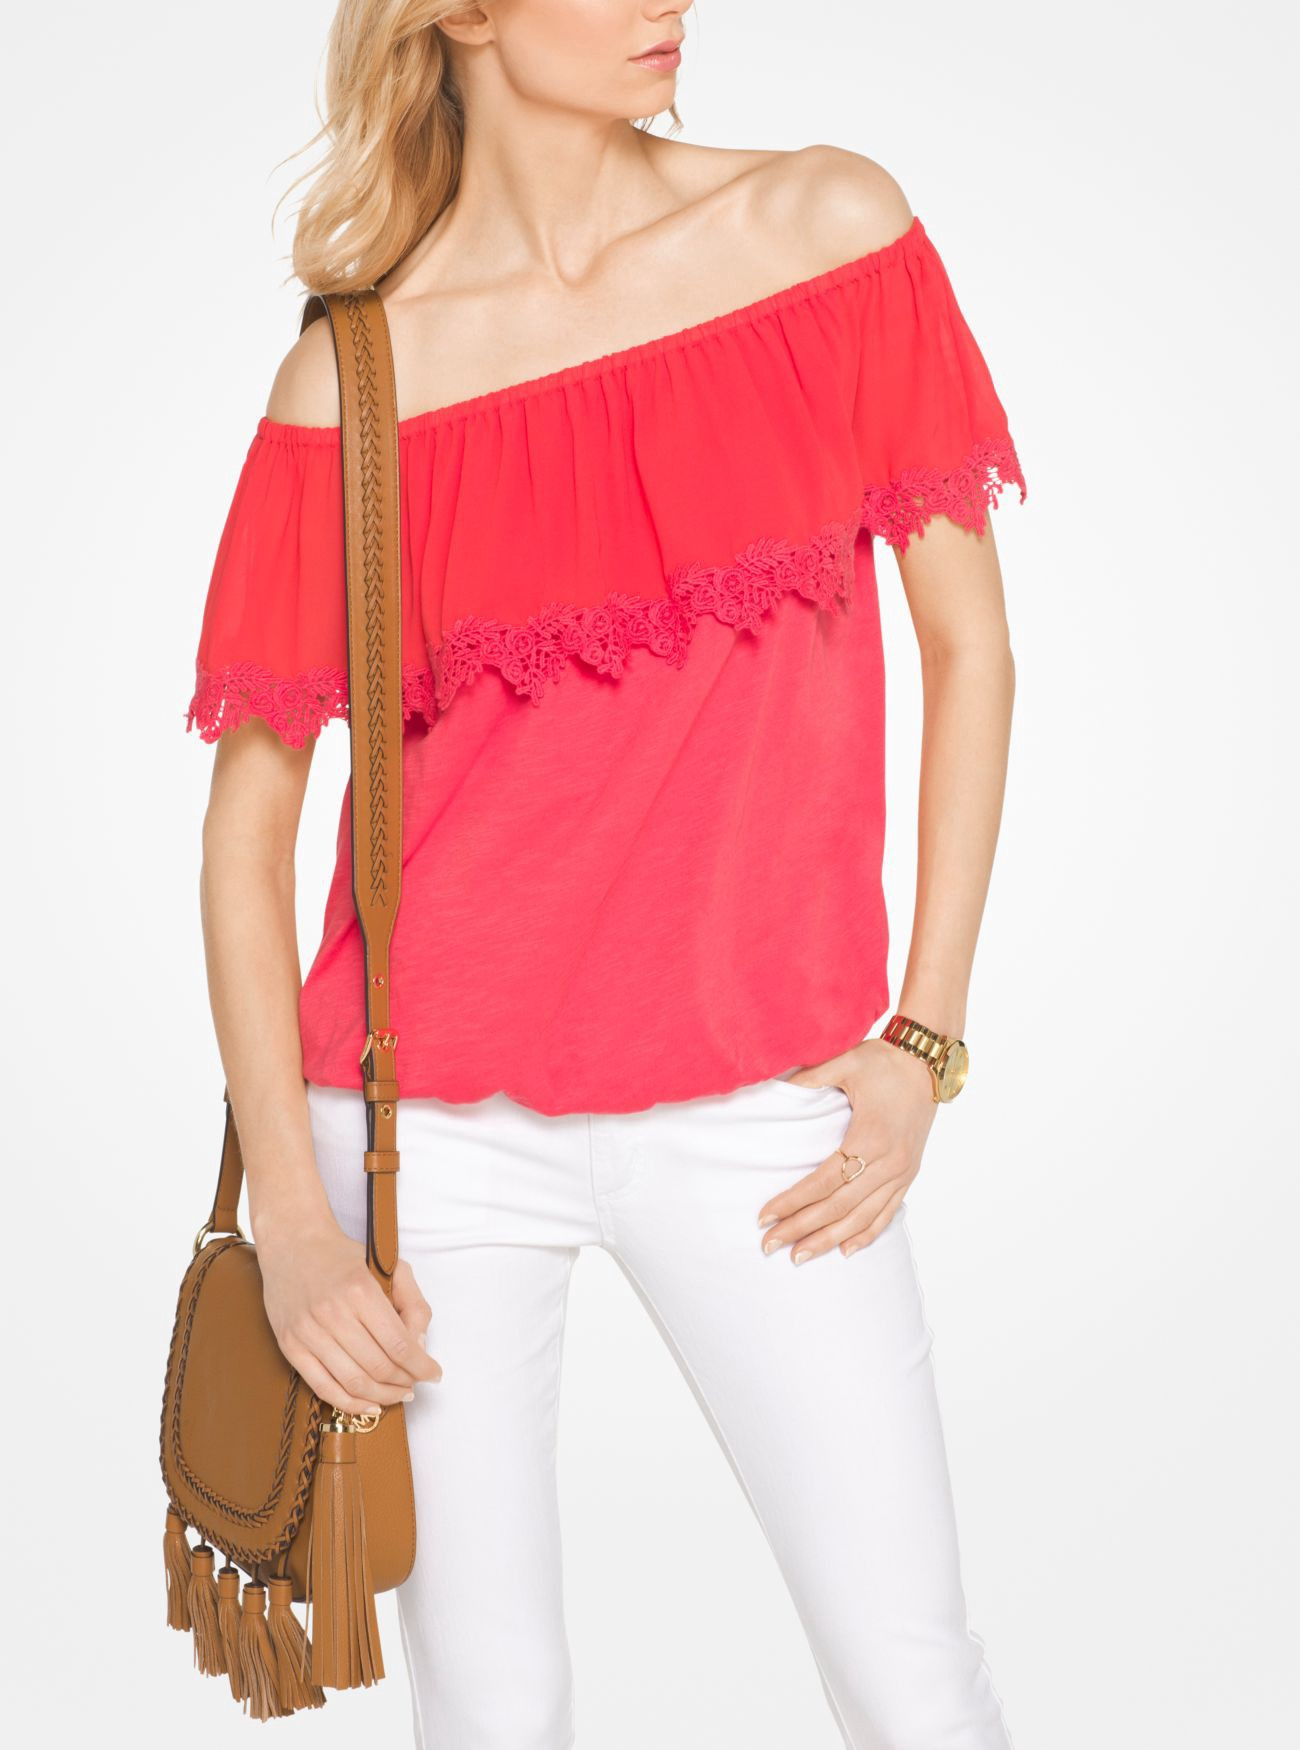 MICHAEL KORS Cotton Off-The-Shoulder Top in Sangria